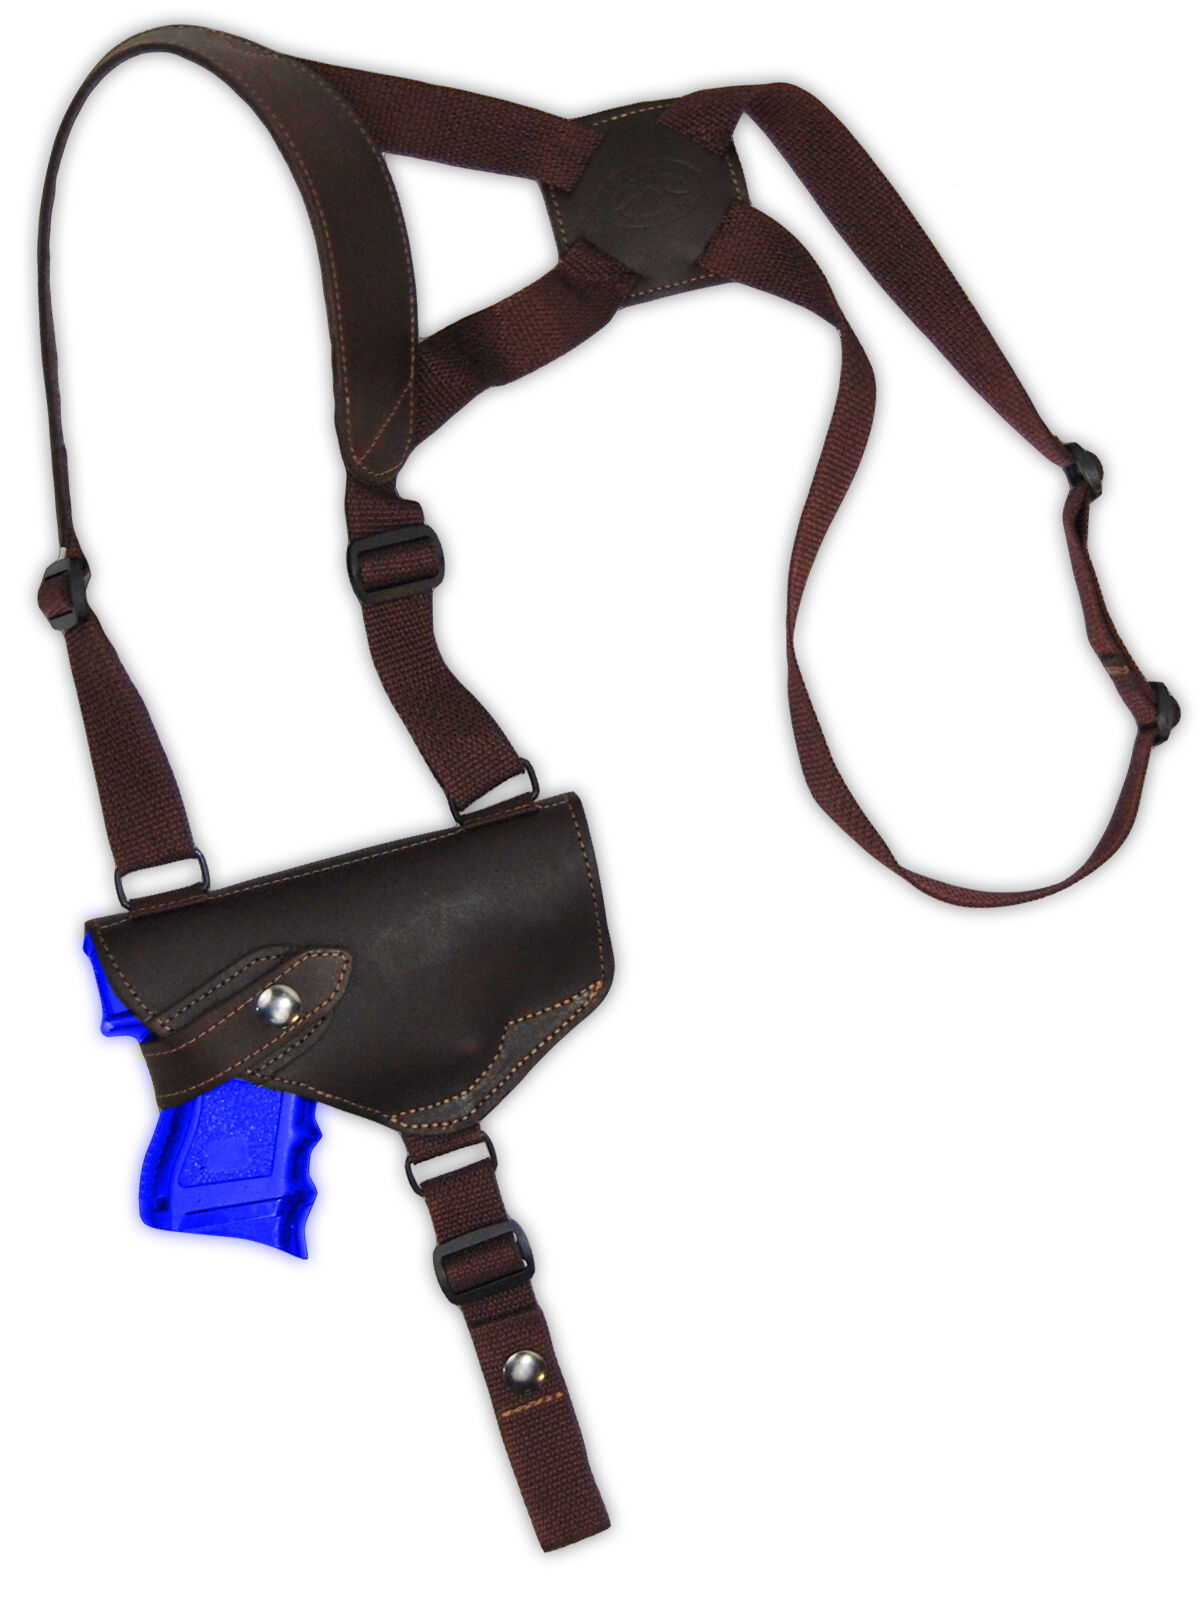 NEW Barsony Horizontal Braun Leder Shoulder Holster Smith & Wesson Comp 9mm 40